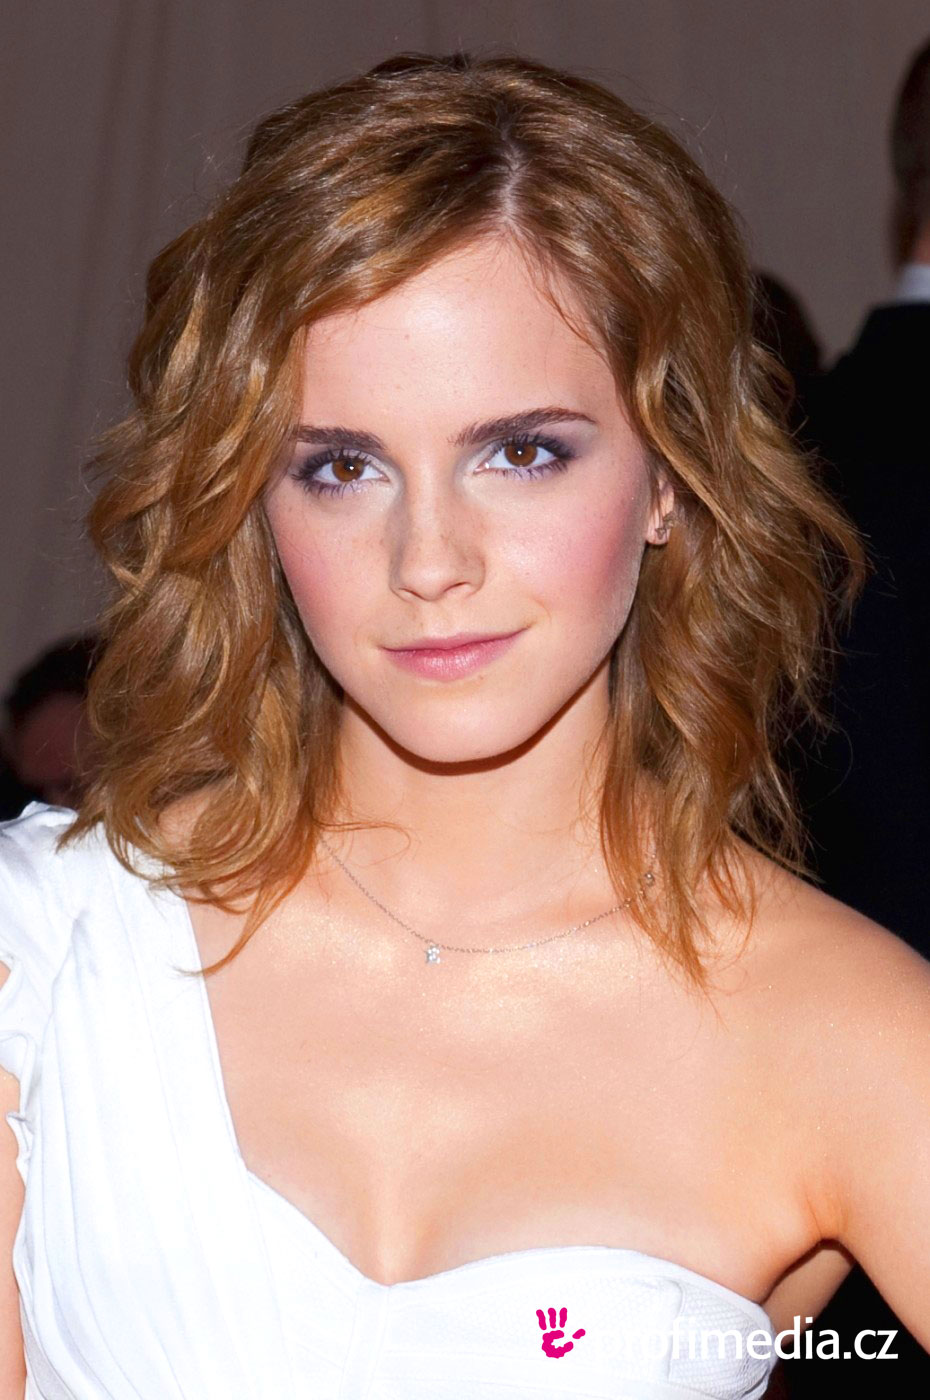 Hilary swank hairstyles for 2017 celebrity hairstyles by - Emma Watson Coiffure Happyhair